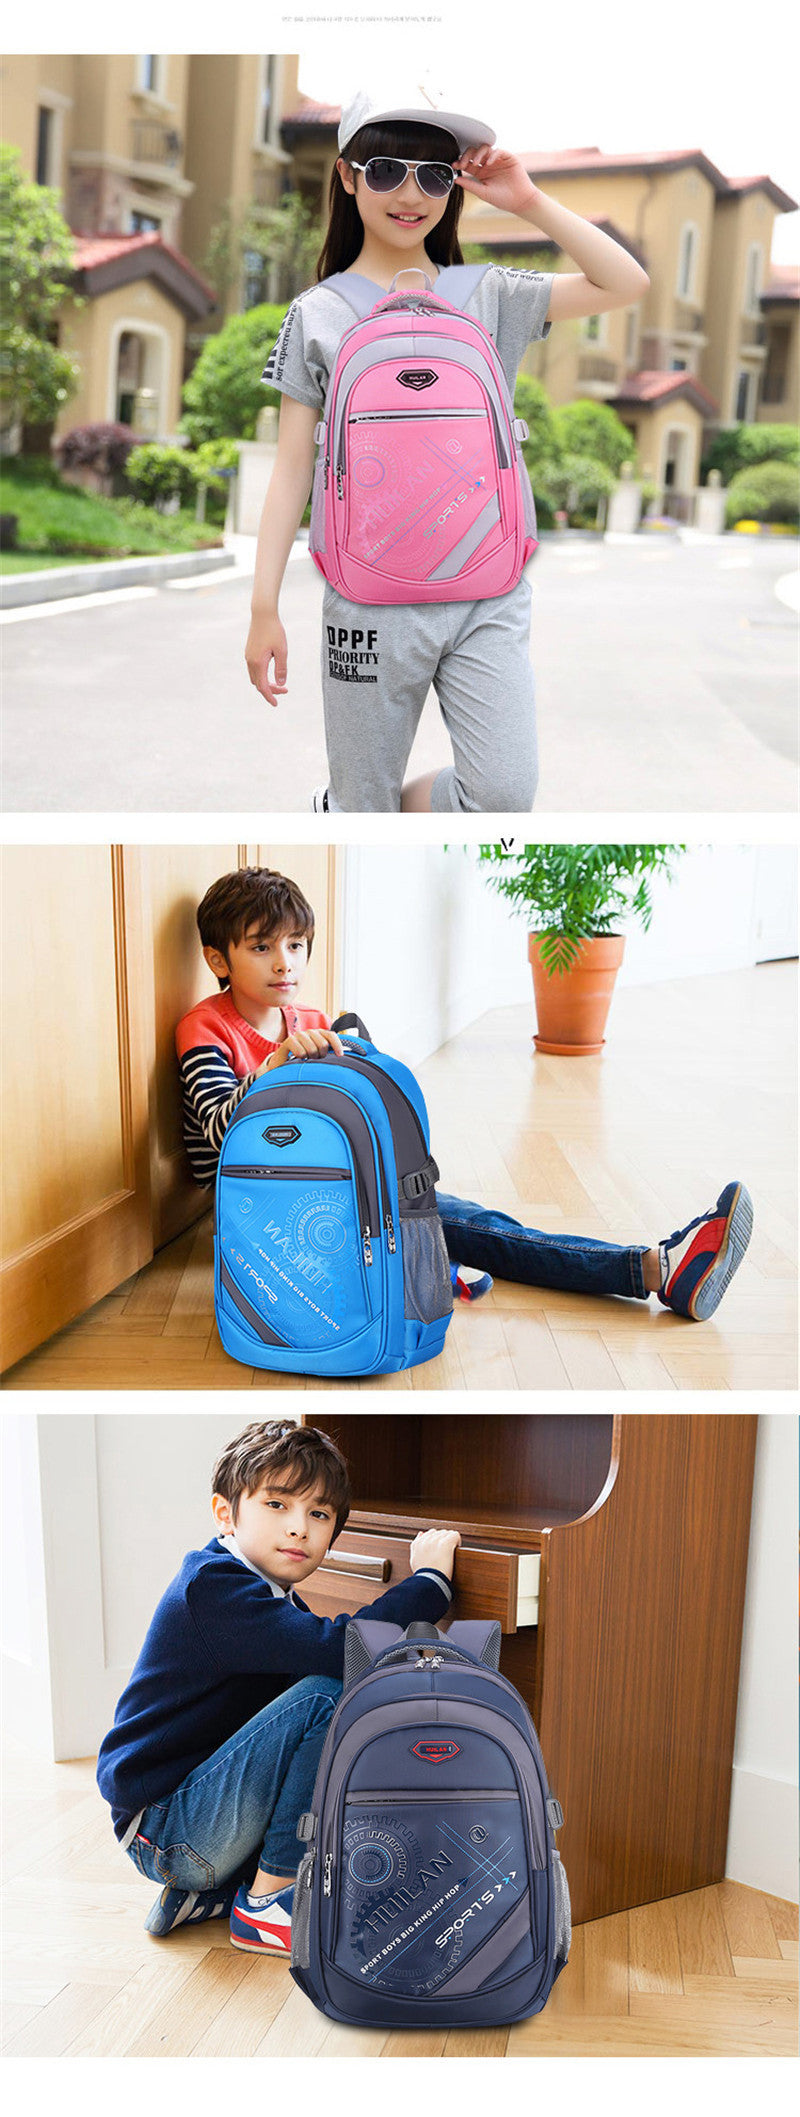 2020 hot new children school bags for teenagers boys girls orthopedic school backpack waterproof satchel kids book bag mochila - BestBagShop